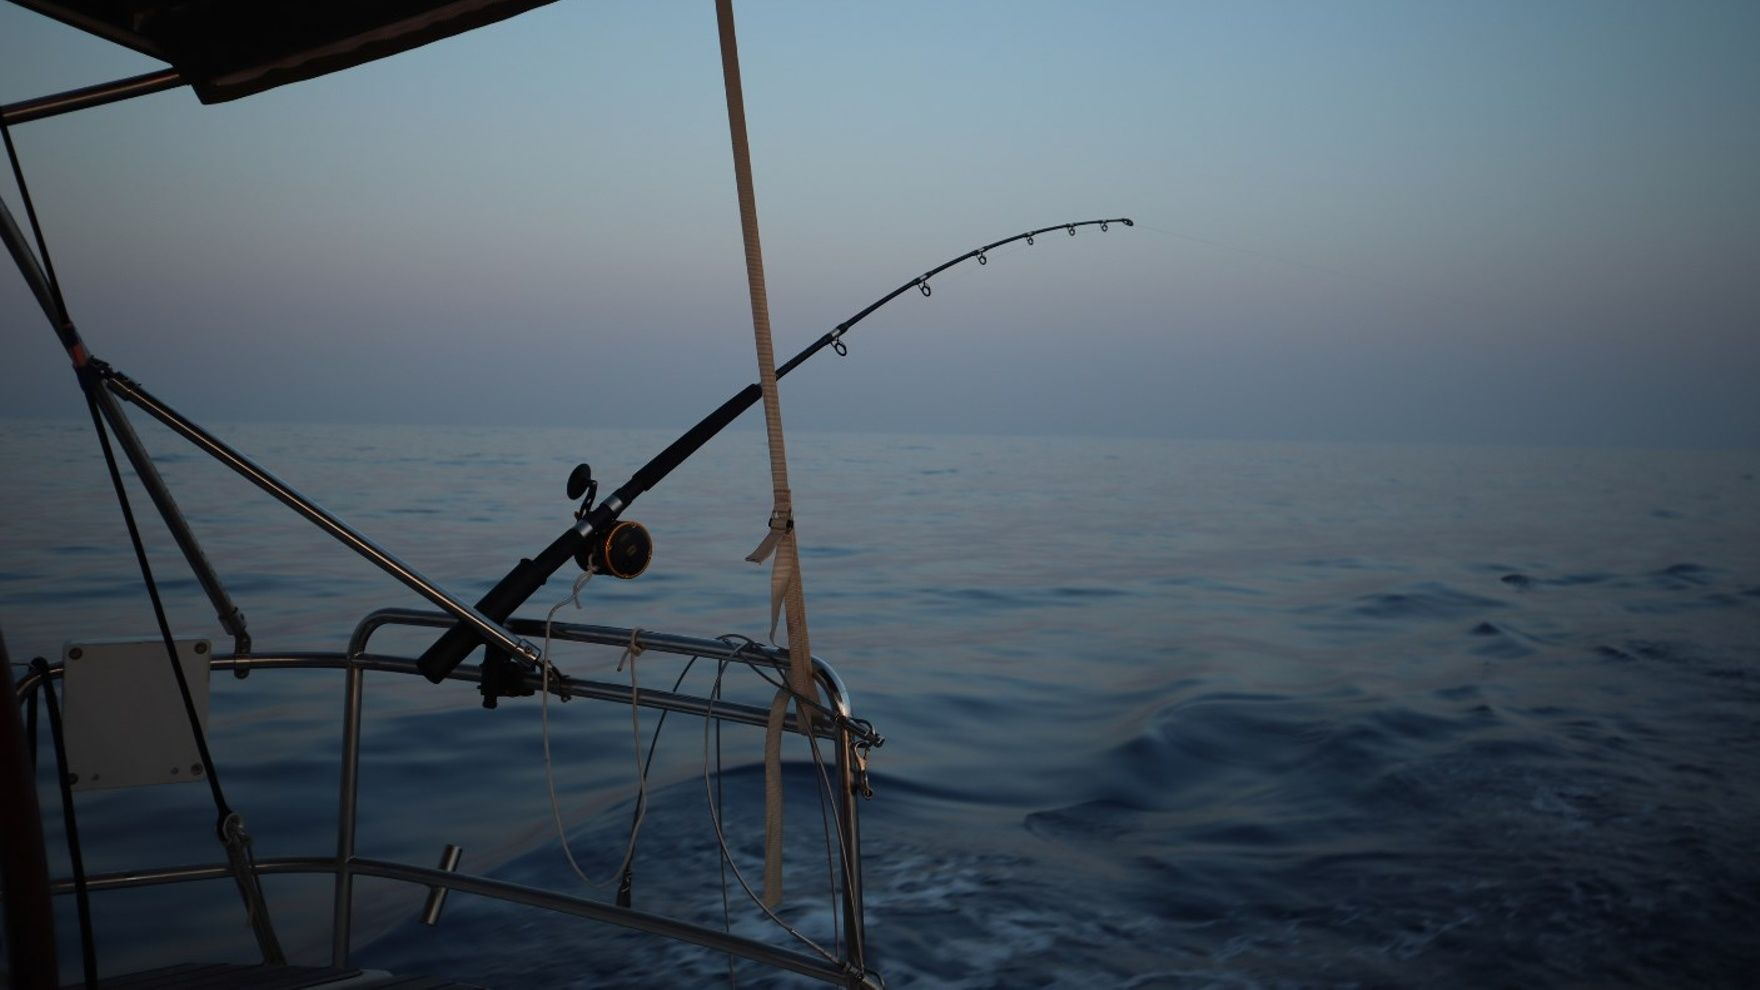 Tuna fishing in Limassol